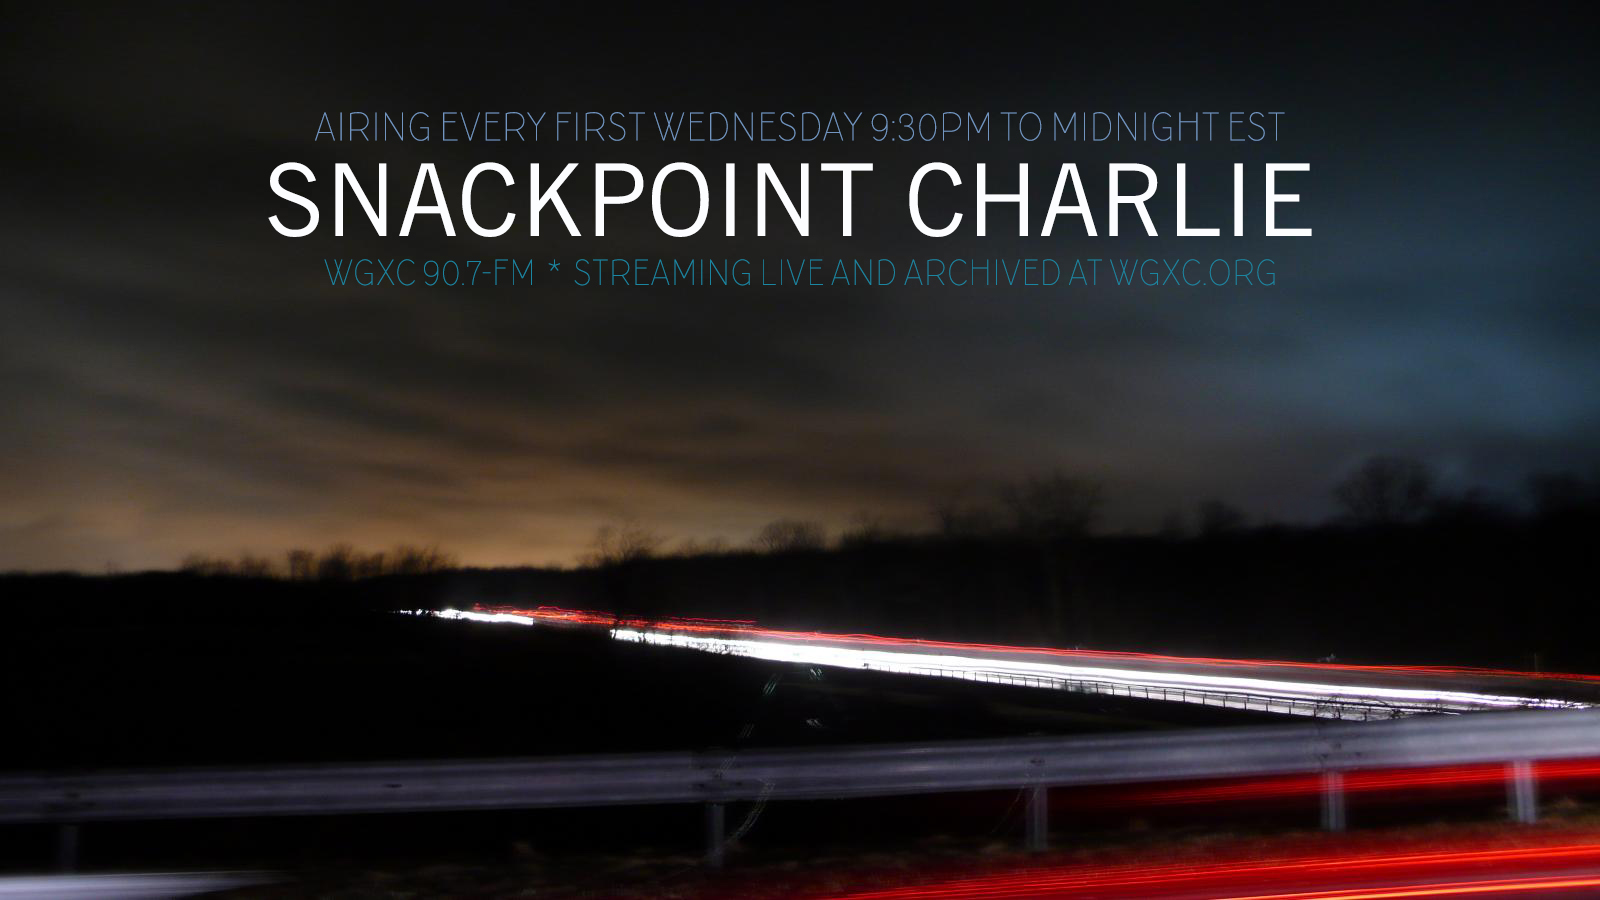 Snackpoint Charlie: 20171206